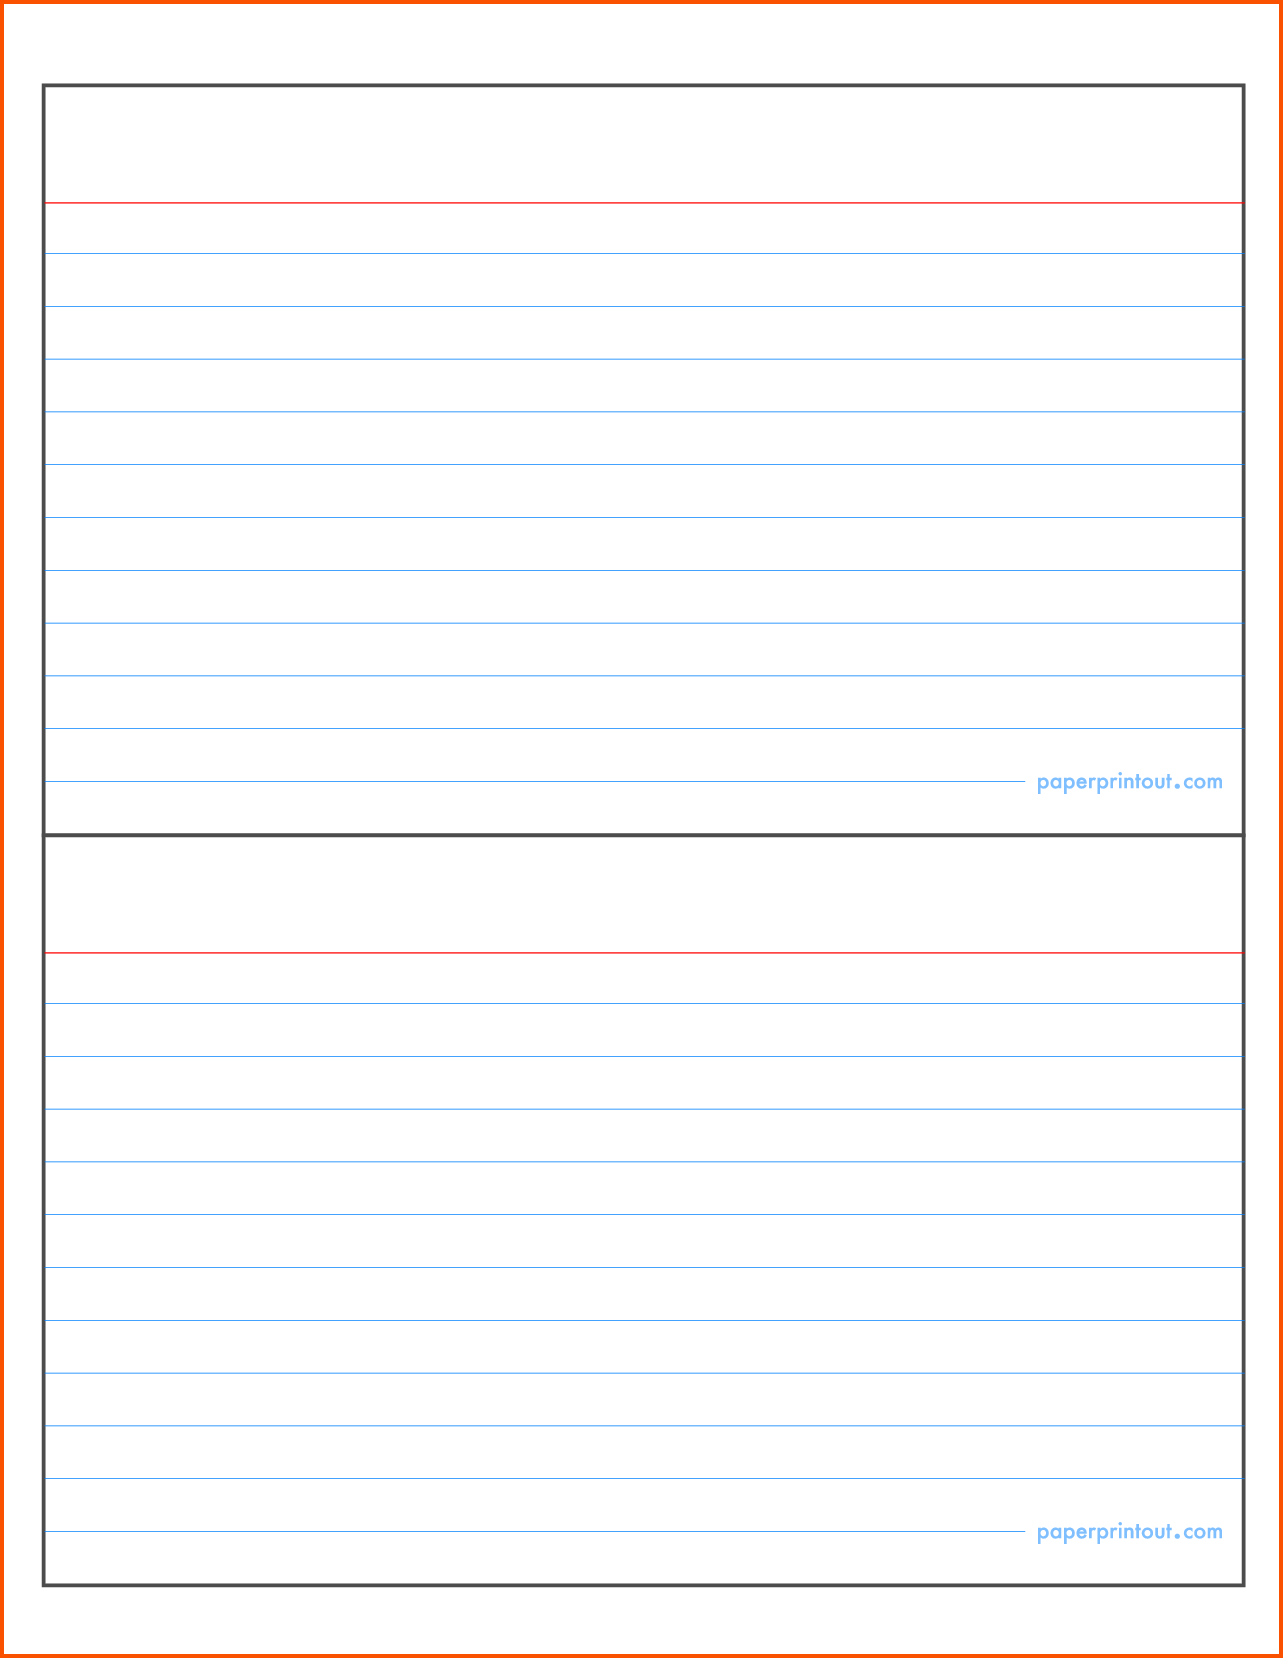 002 Template Ideas Note Card Word Index Cards 127998 Intended For Index Card Template For Word